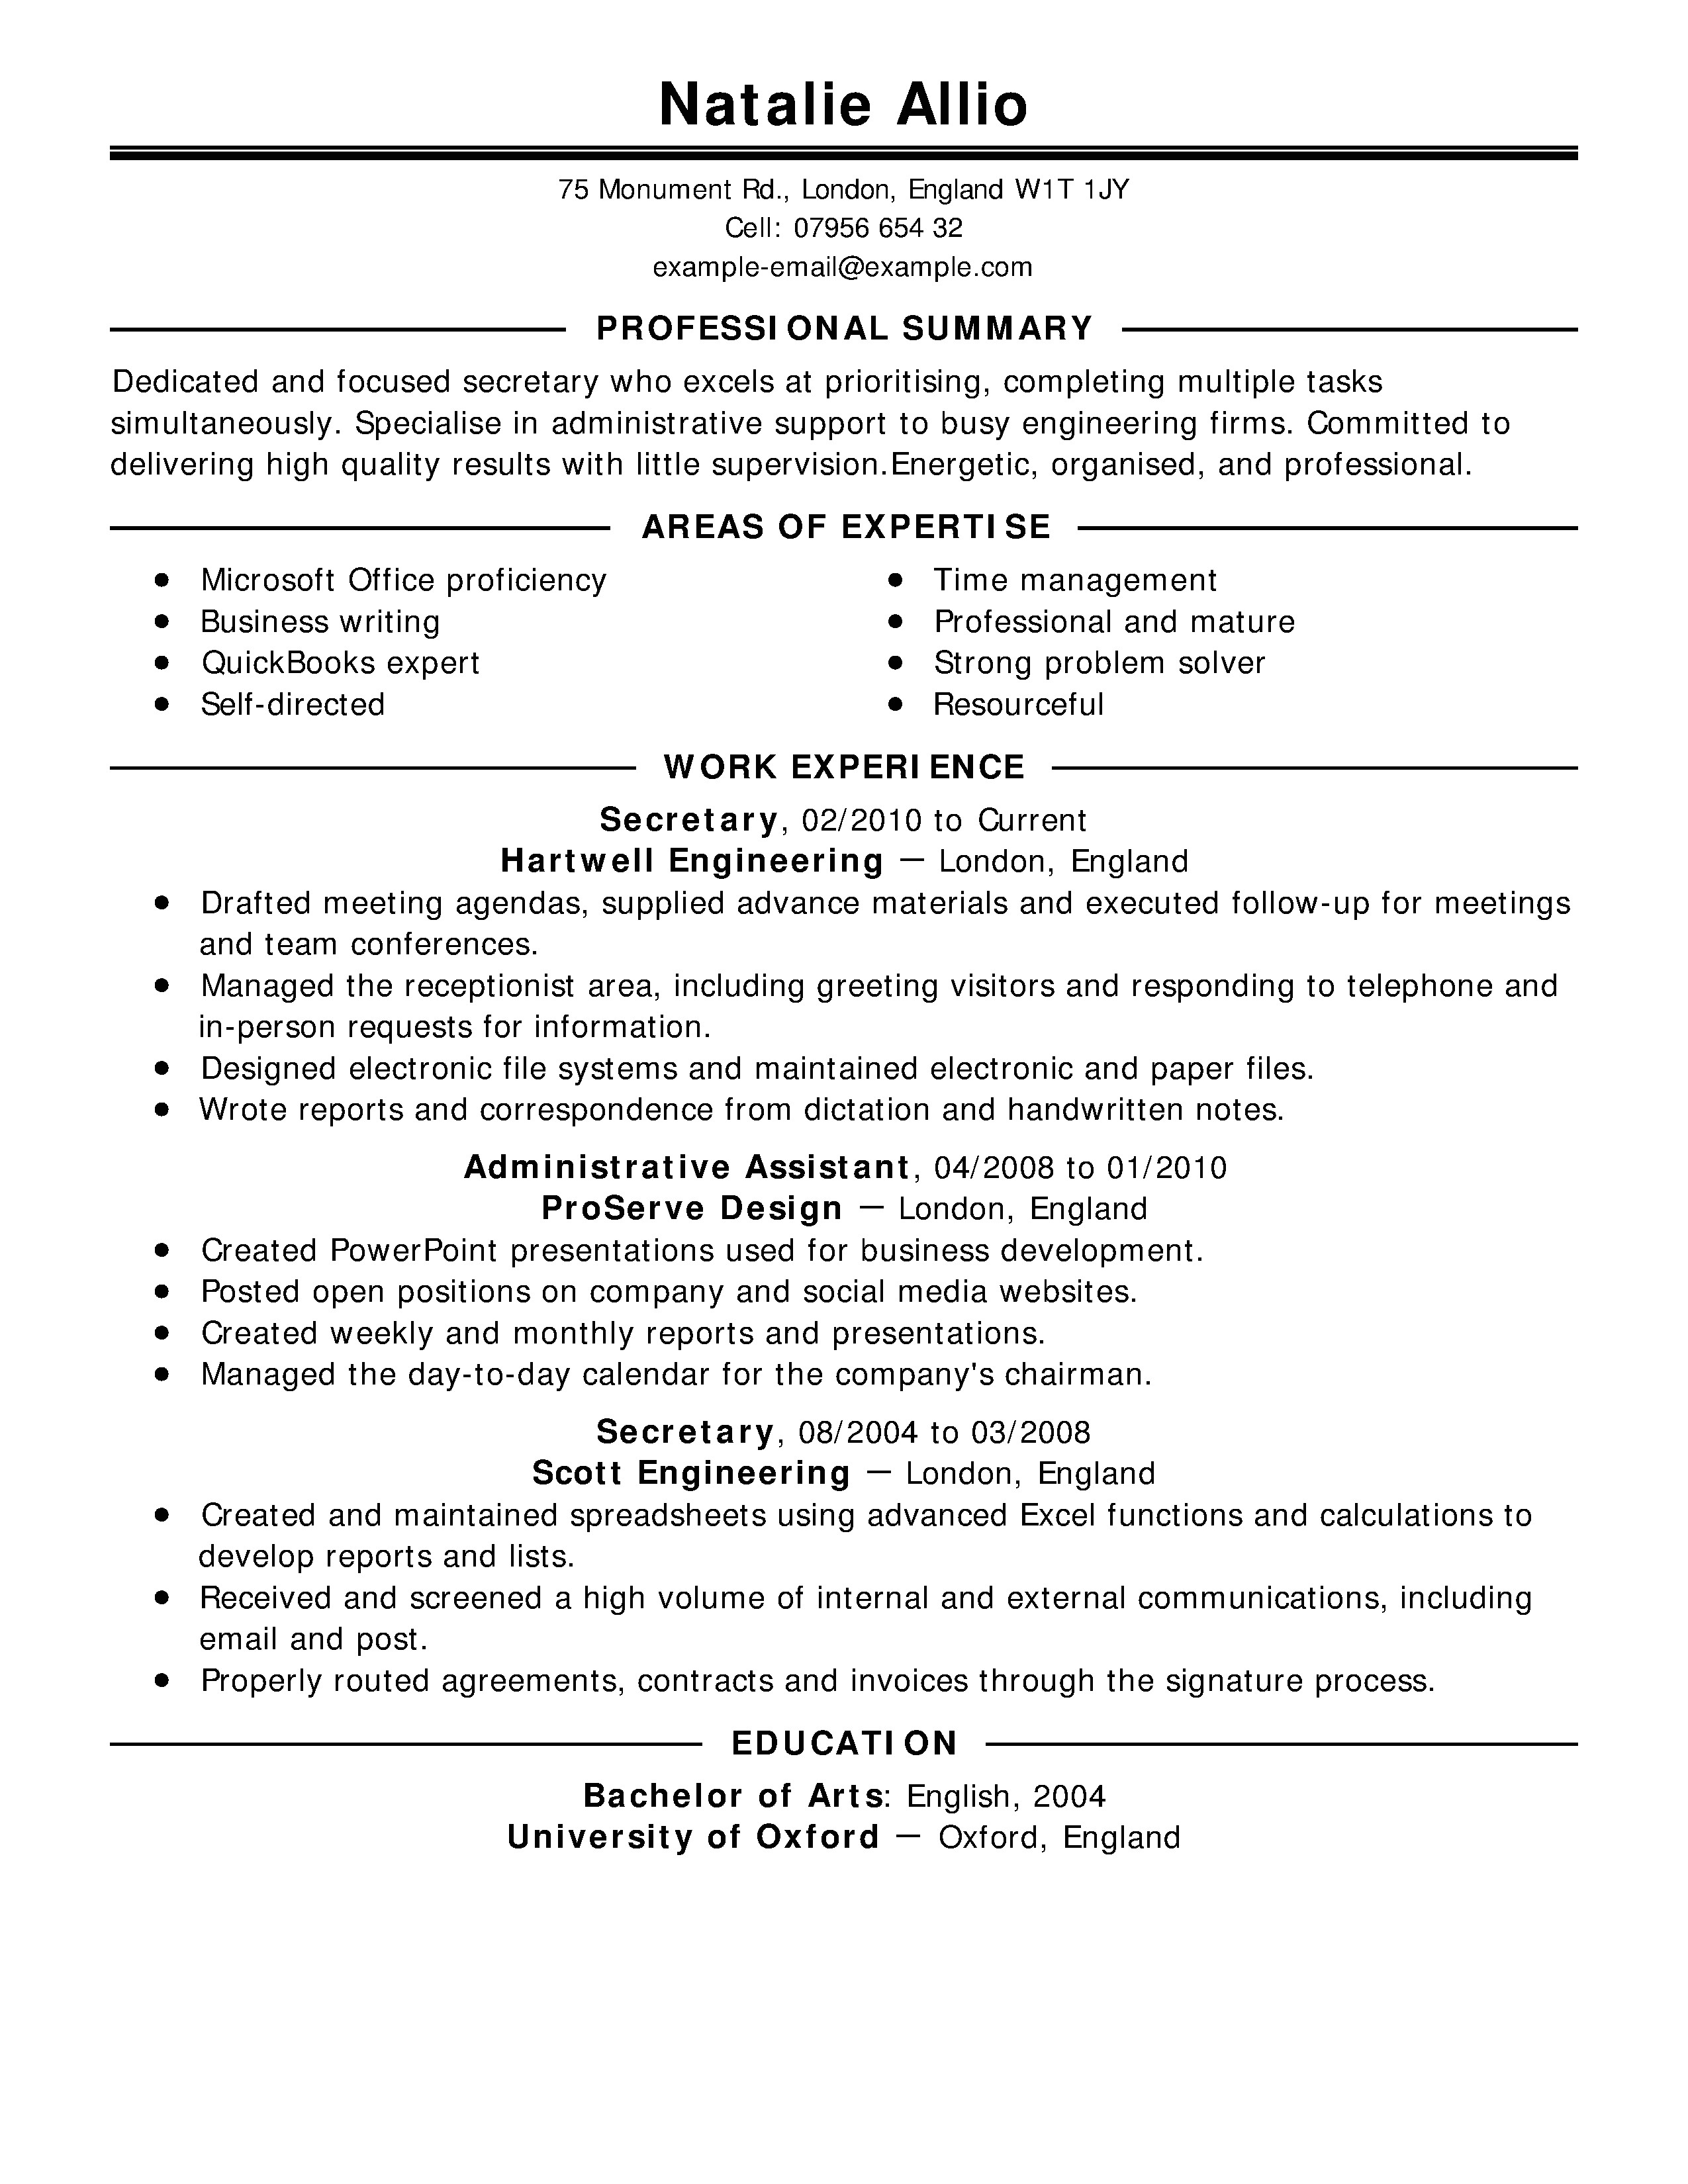 Extensive Resume Sample Free Cv Examples to Get the Job Live Career Uk